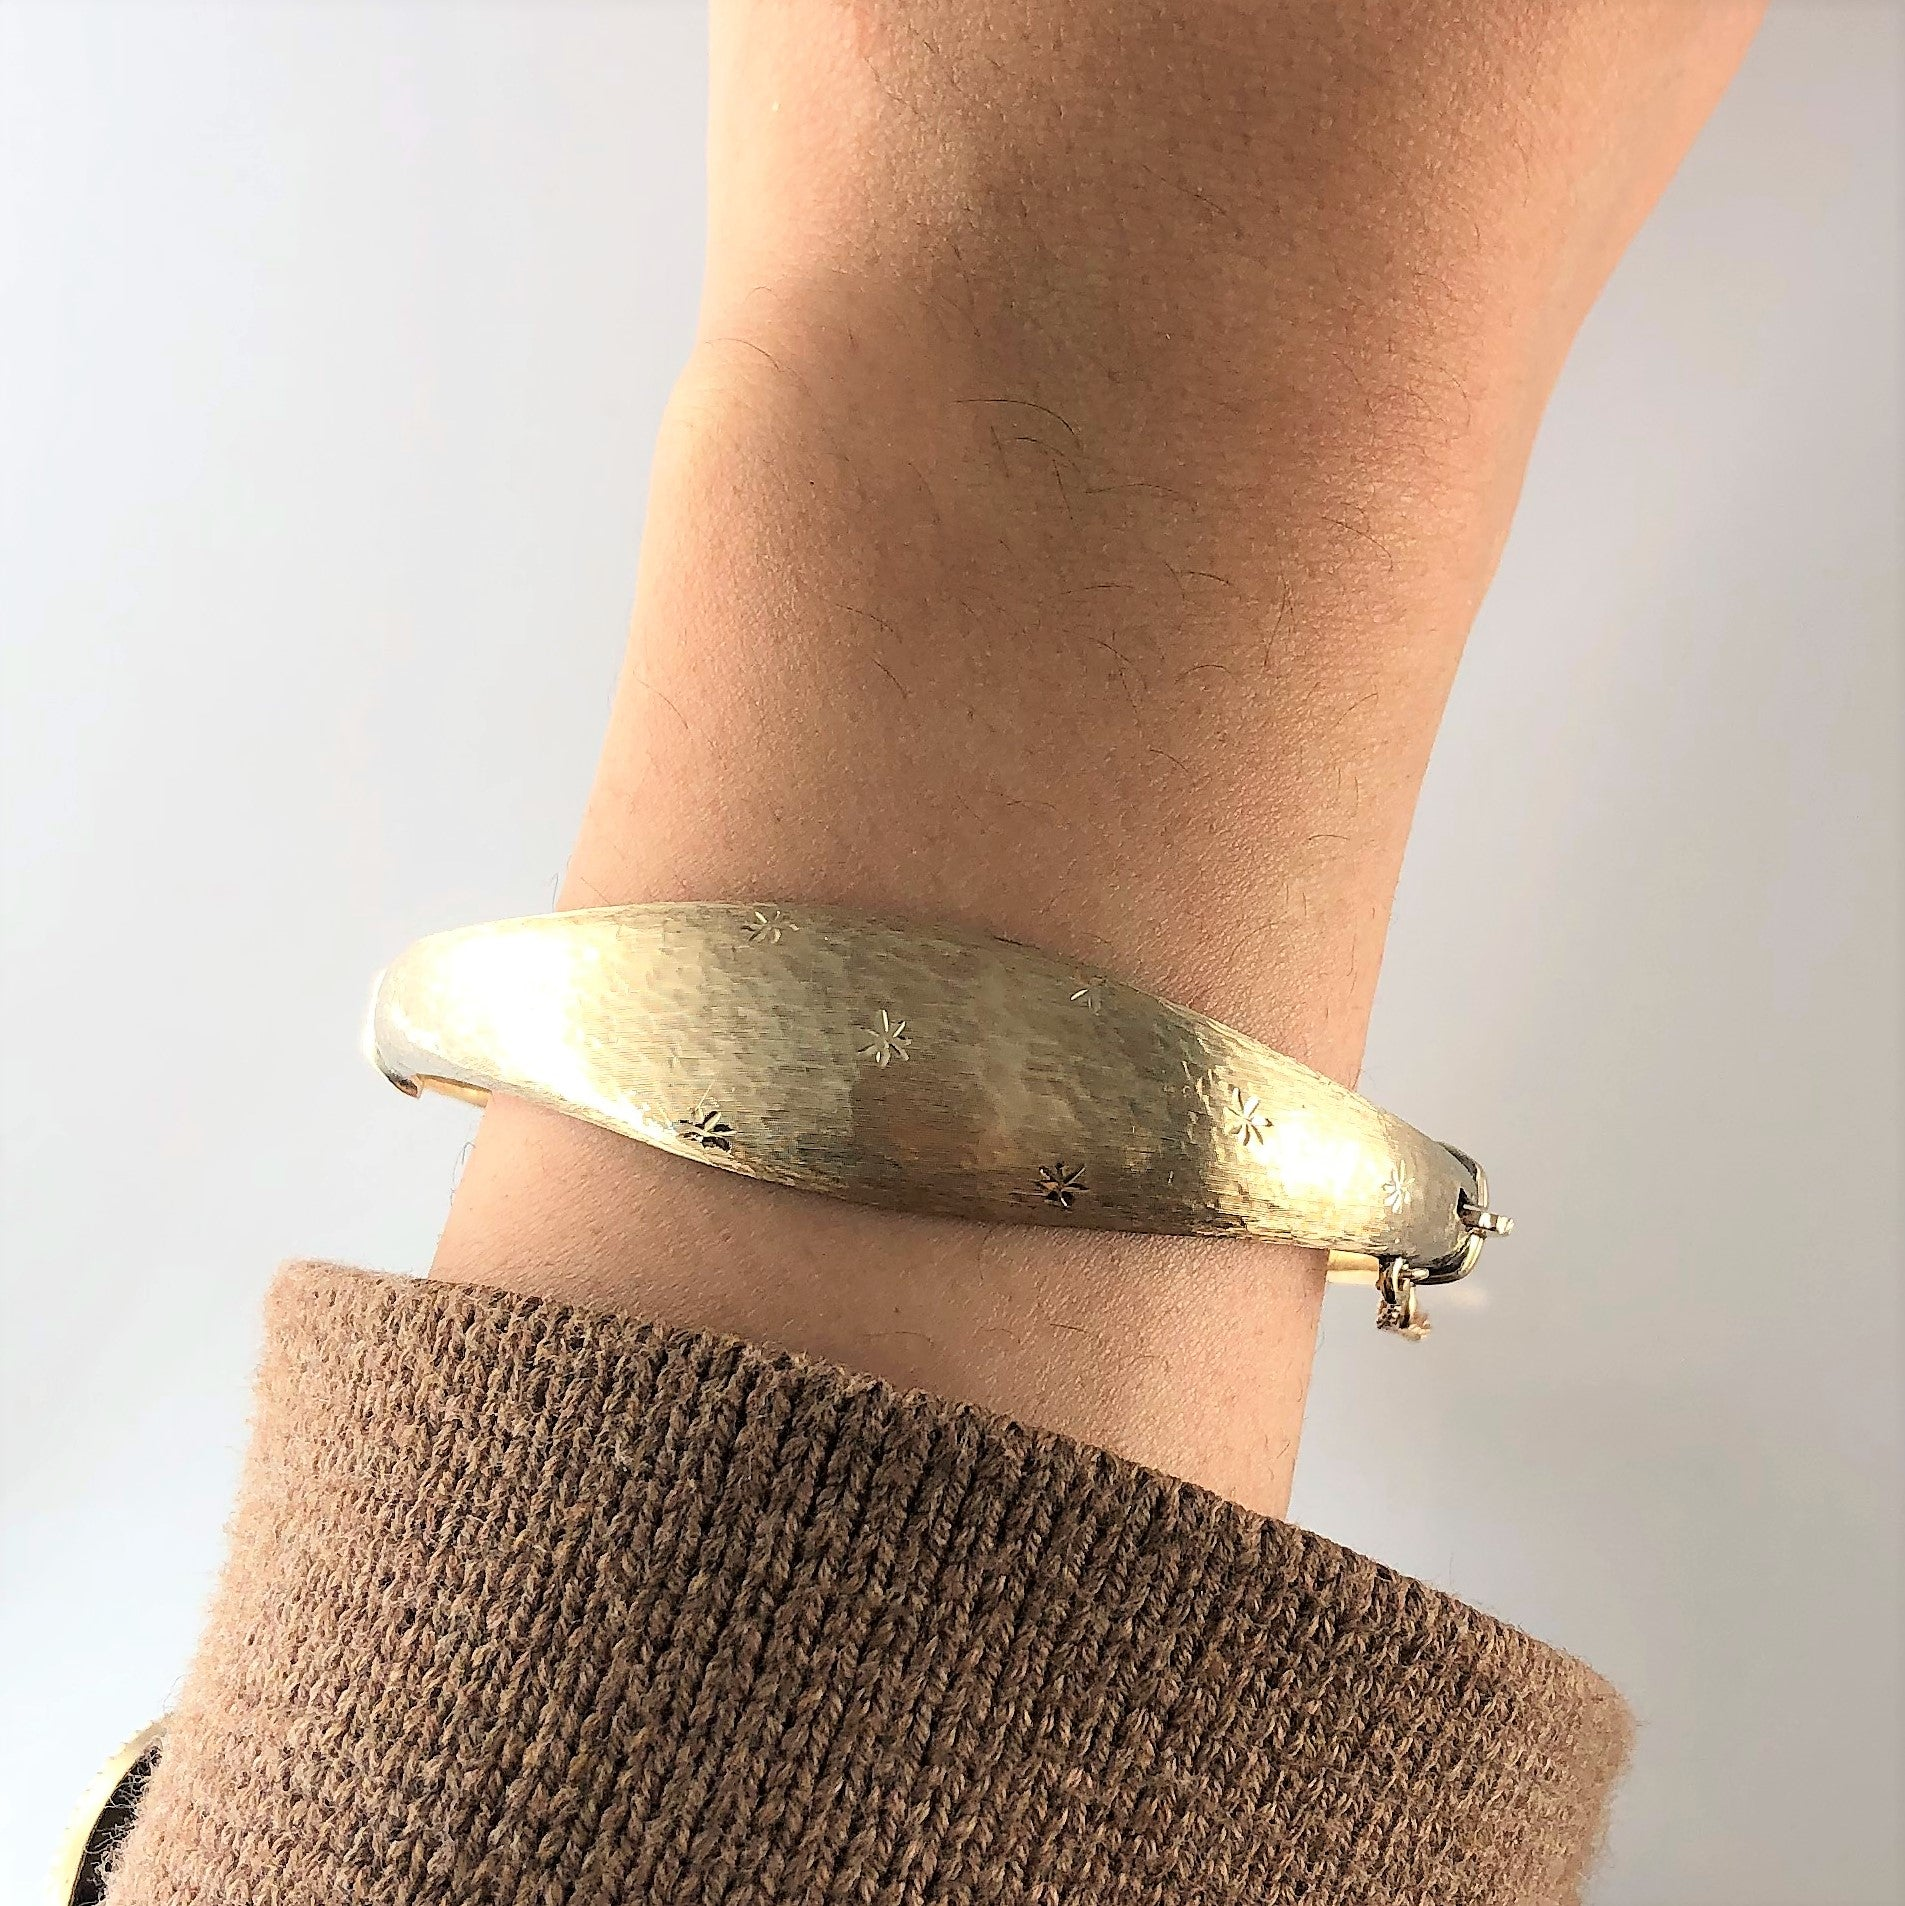 'Birks' Diamond Cut Detailed Gold Bangle | 6.5"